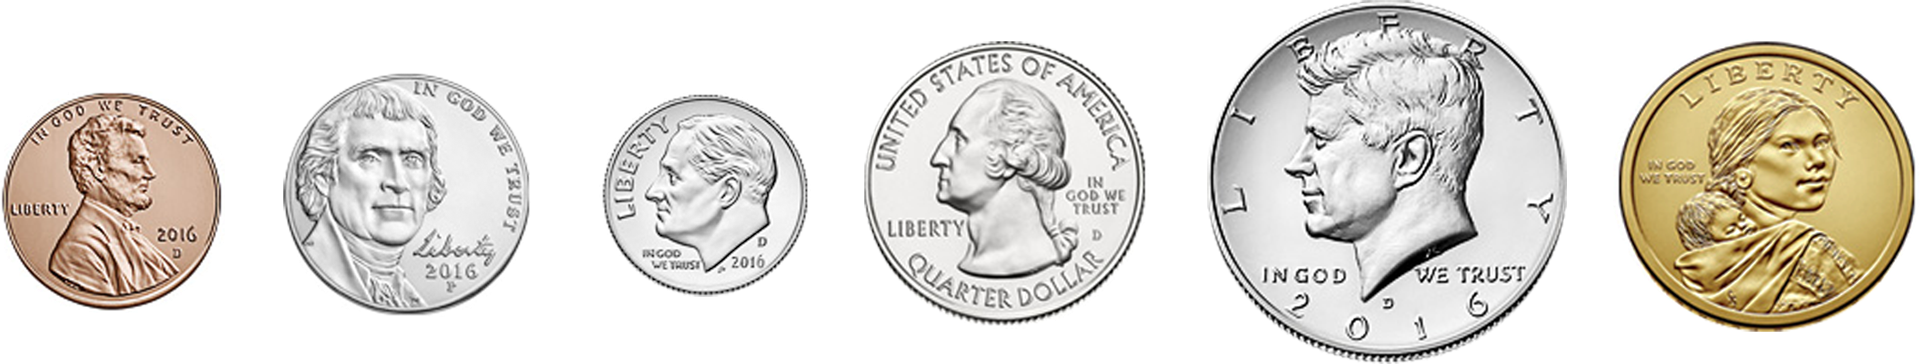 An image of 6 U.S. coins. A penny, nickel, dime, quarter, half dollar, and dollar coin are presented.